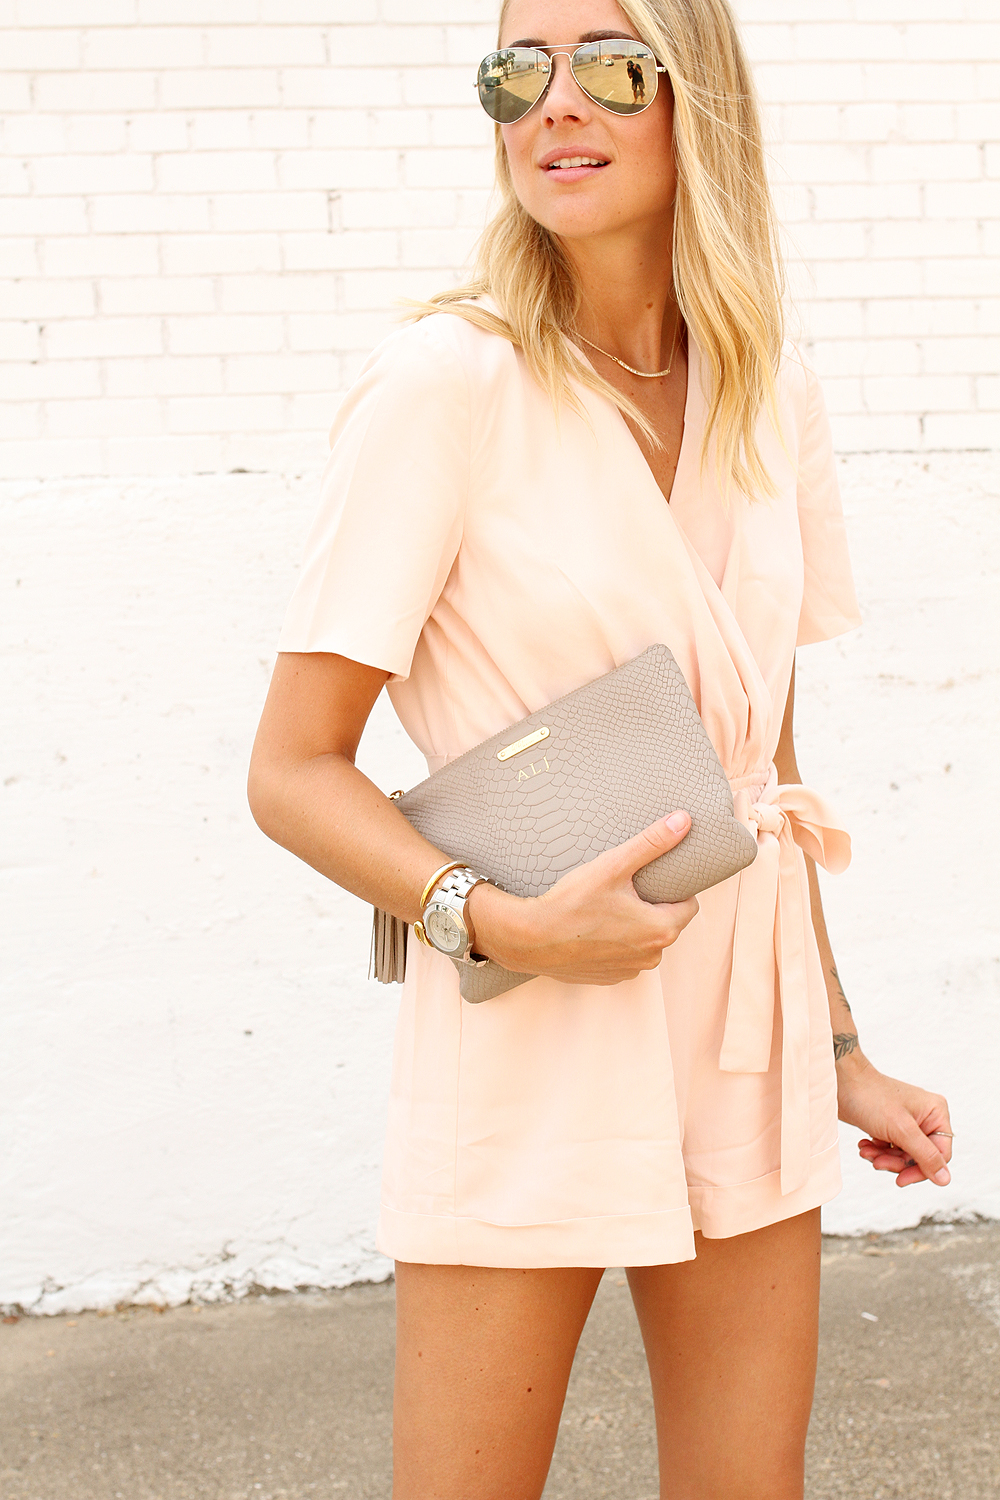 fashion-jackson-gigi-new-york-all-in-one-clutch-ray-ban-aviator-sunglasses-finders-keepers-reweind-playsuit-romper-pink